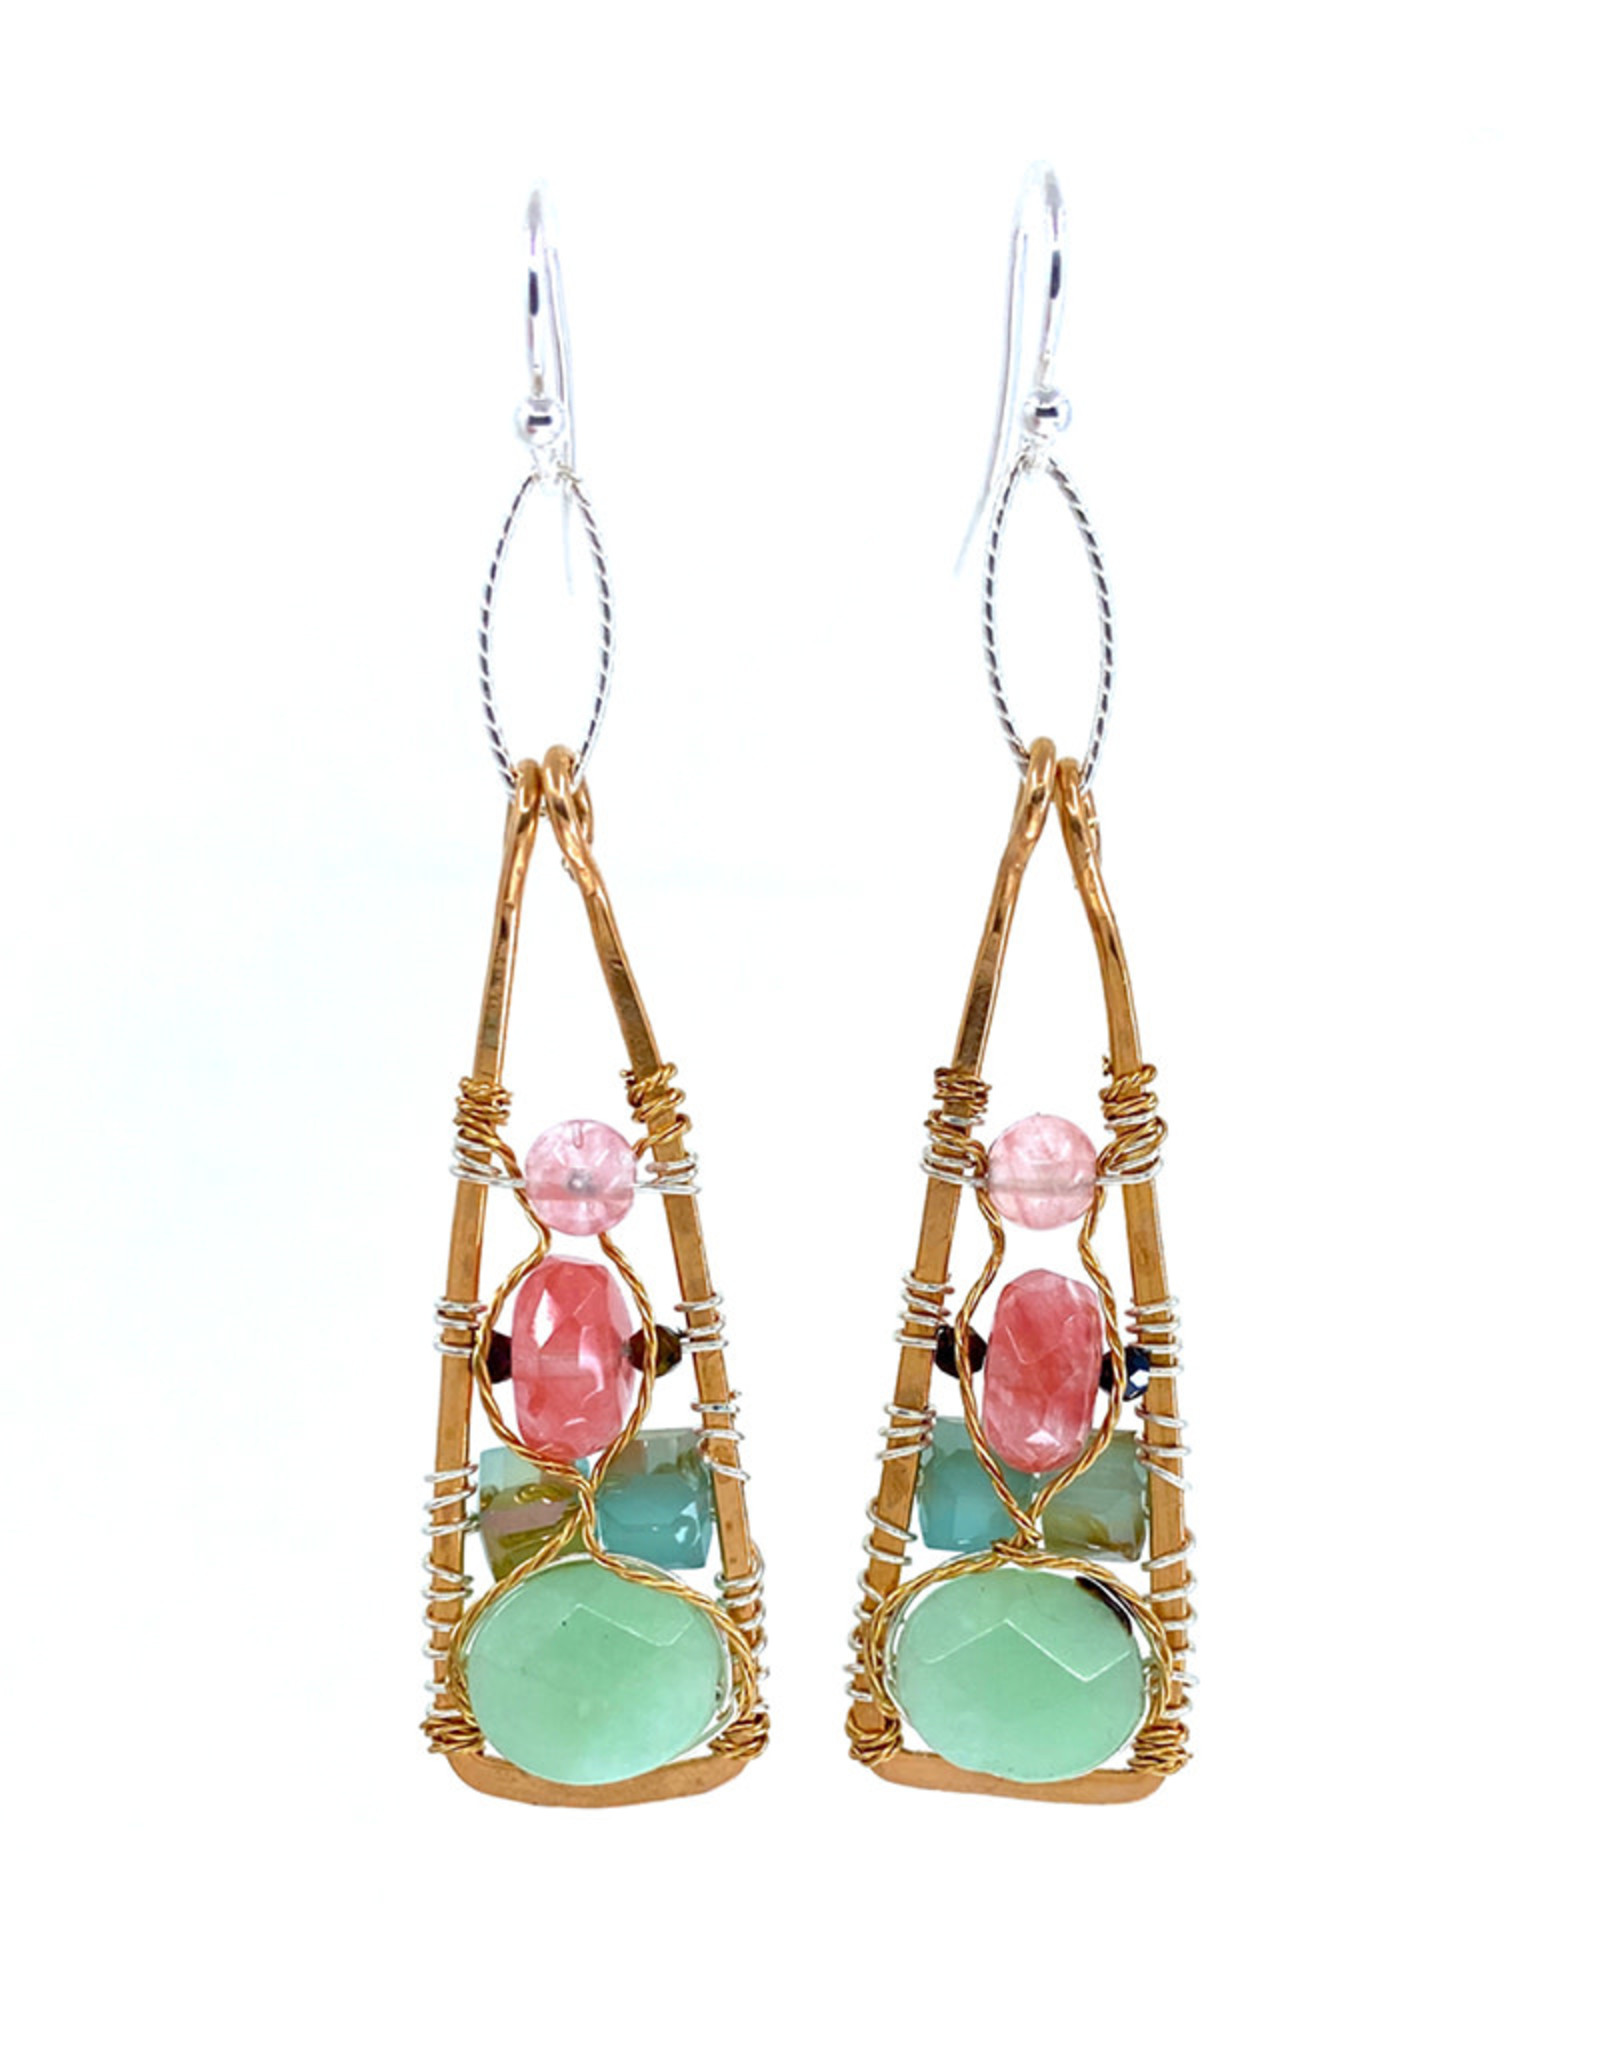 ART BY ANY MEANS JADE & CHERRY QUARTZ EARRINGS